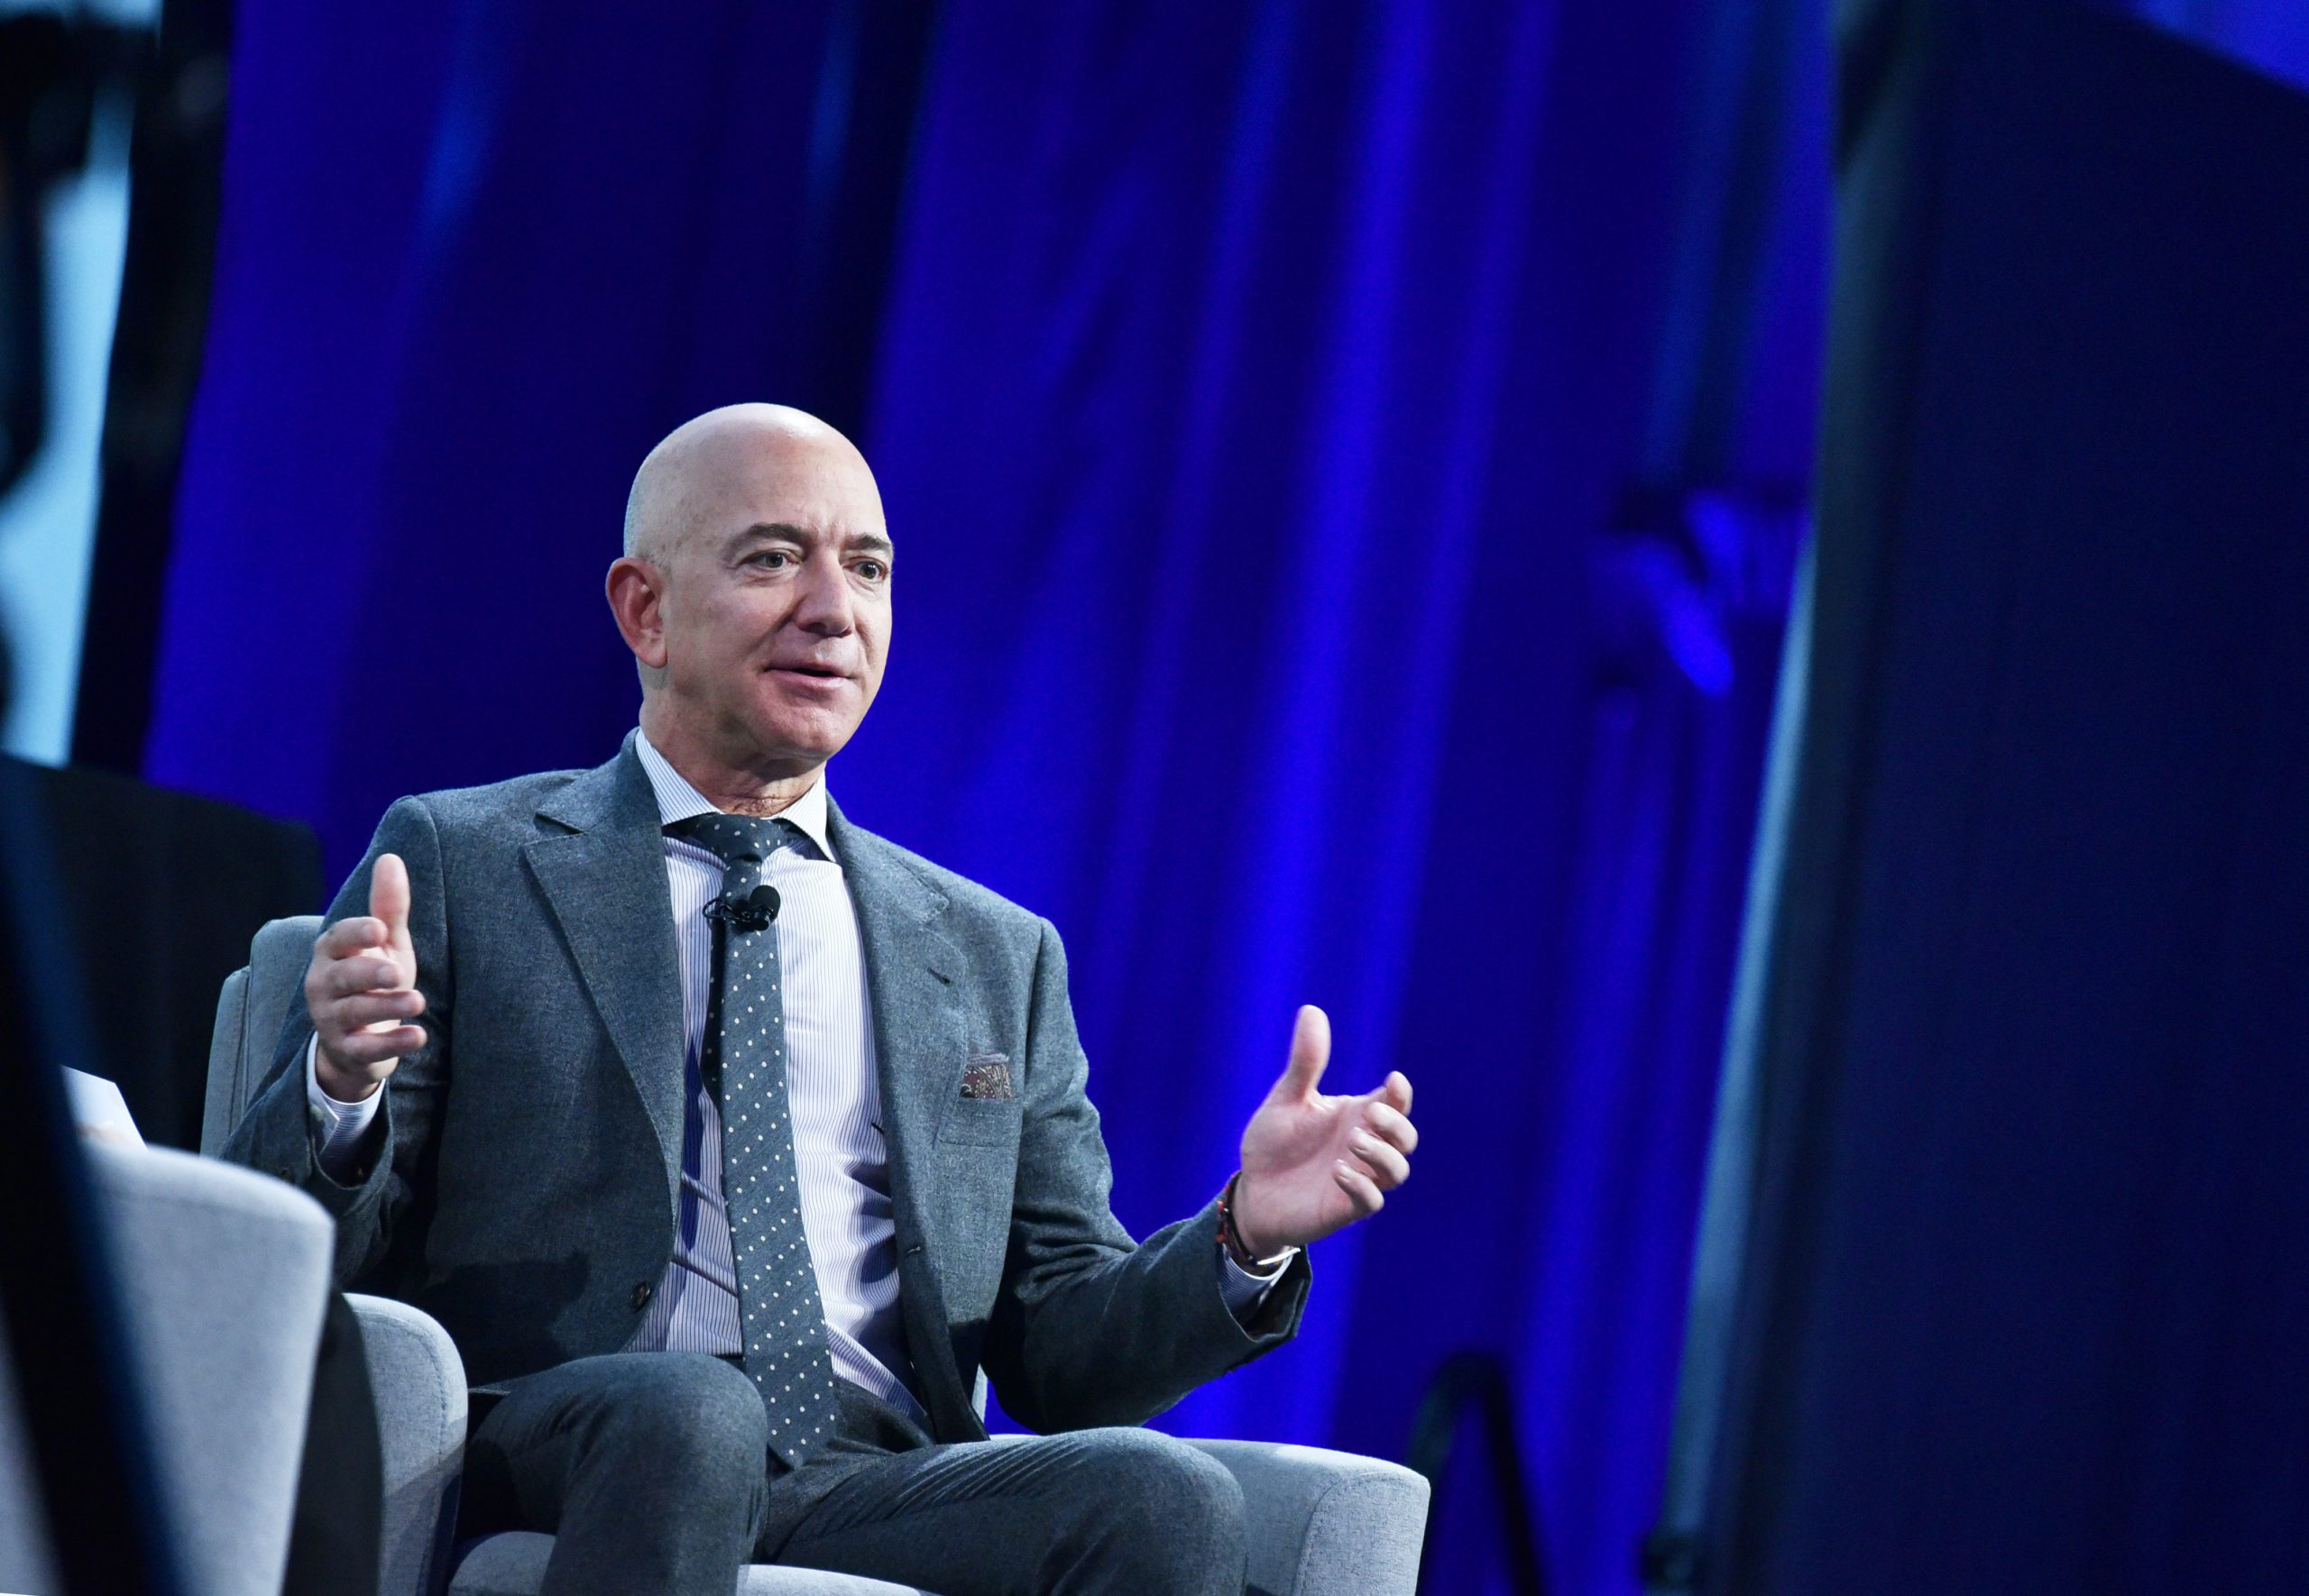 Photo of Amazons Bezos: The world needs giant companies too